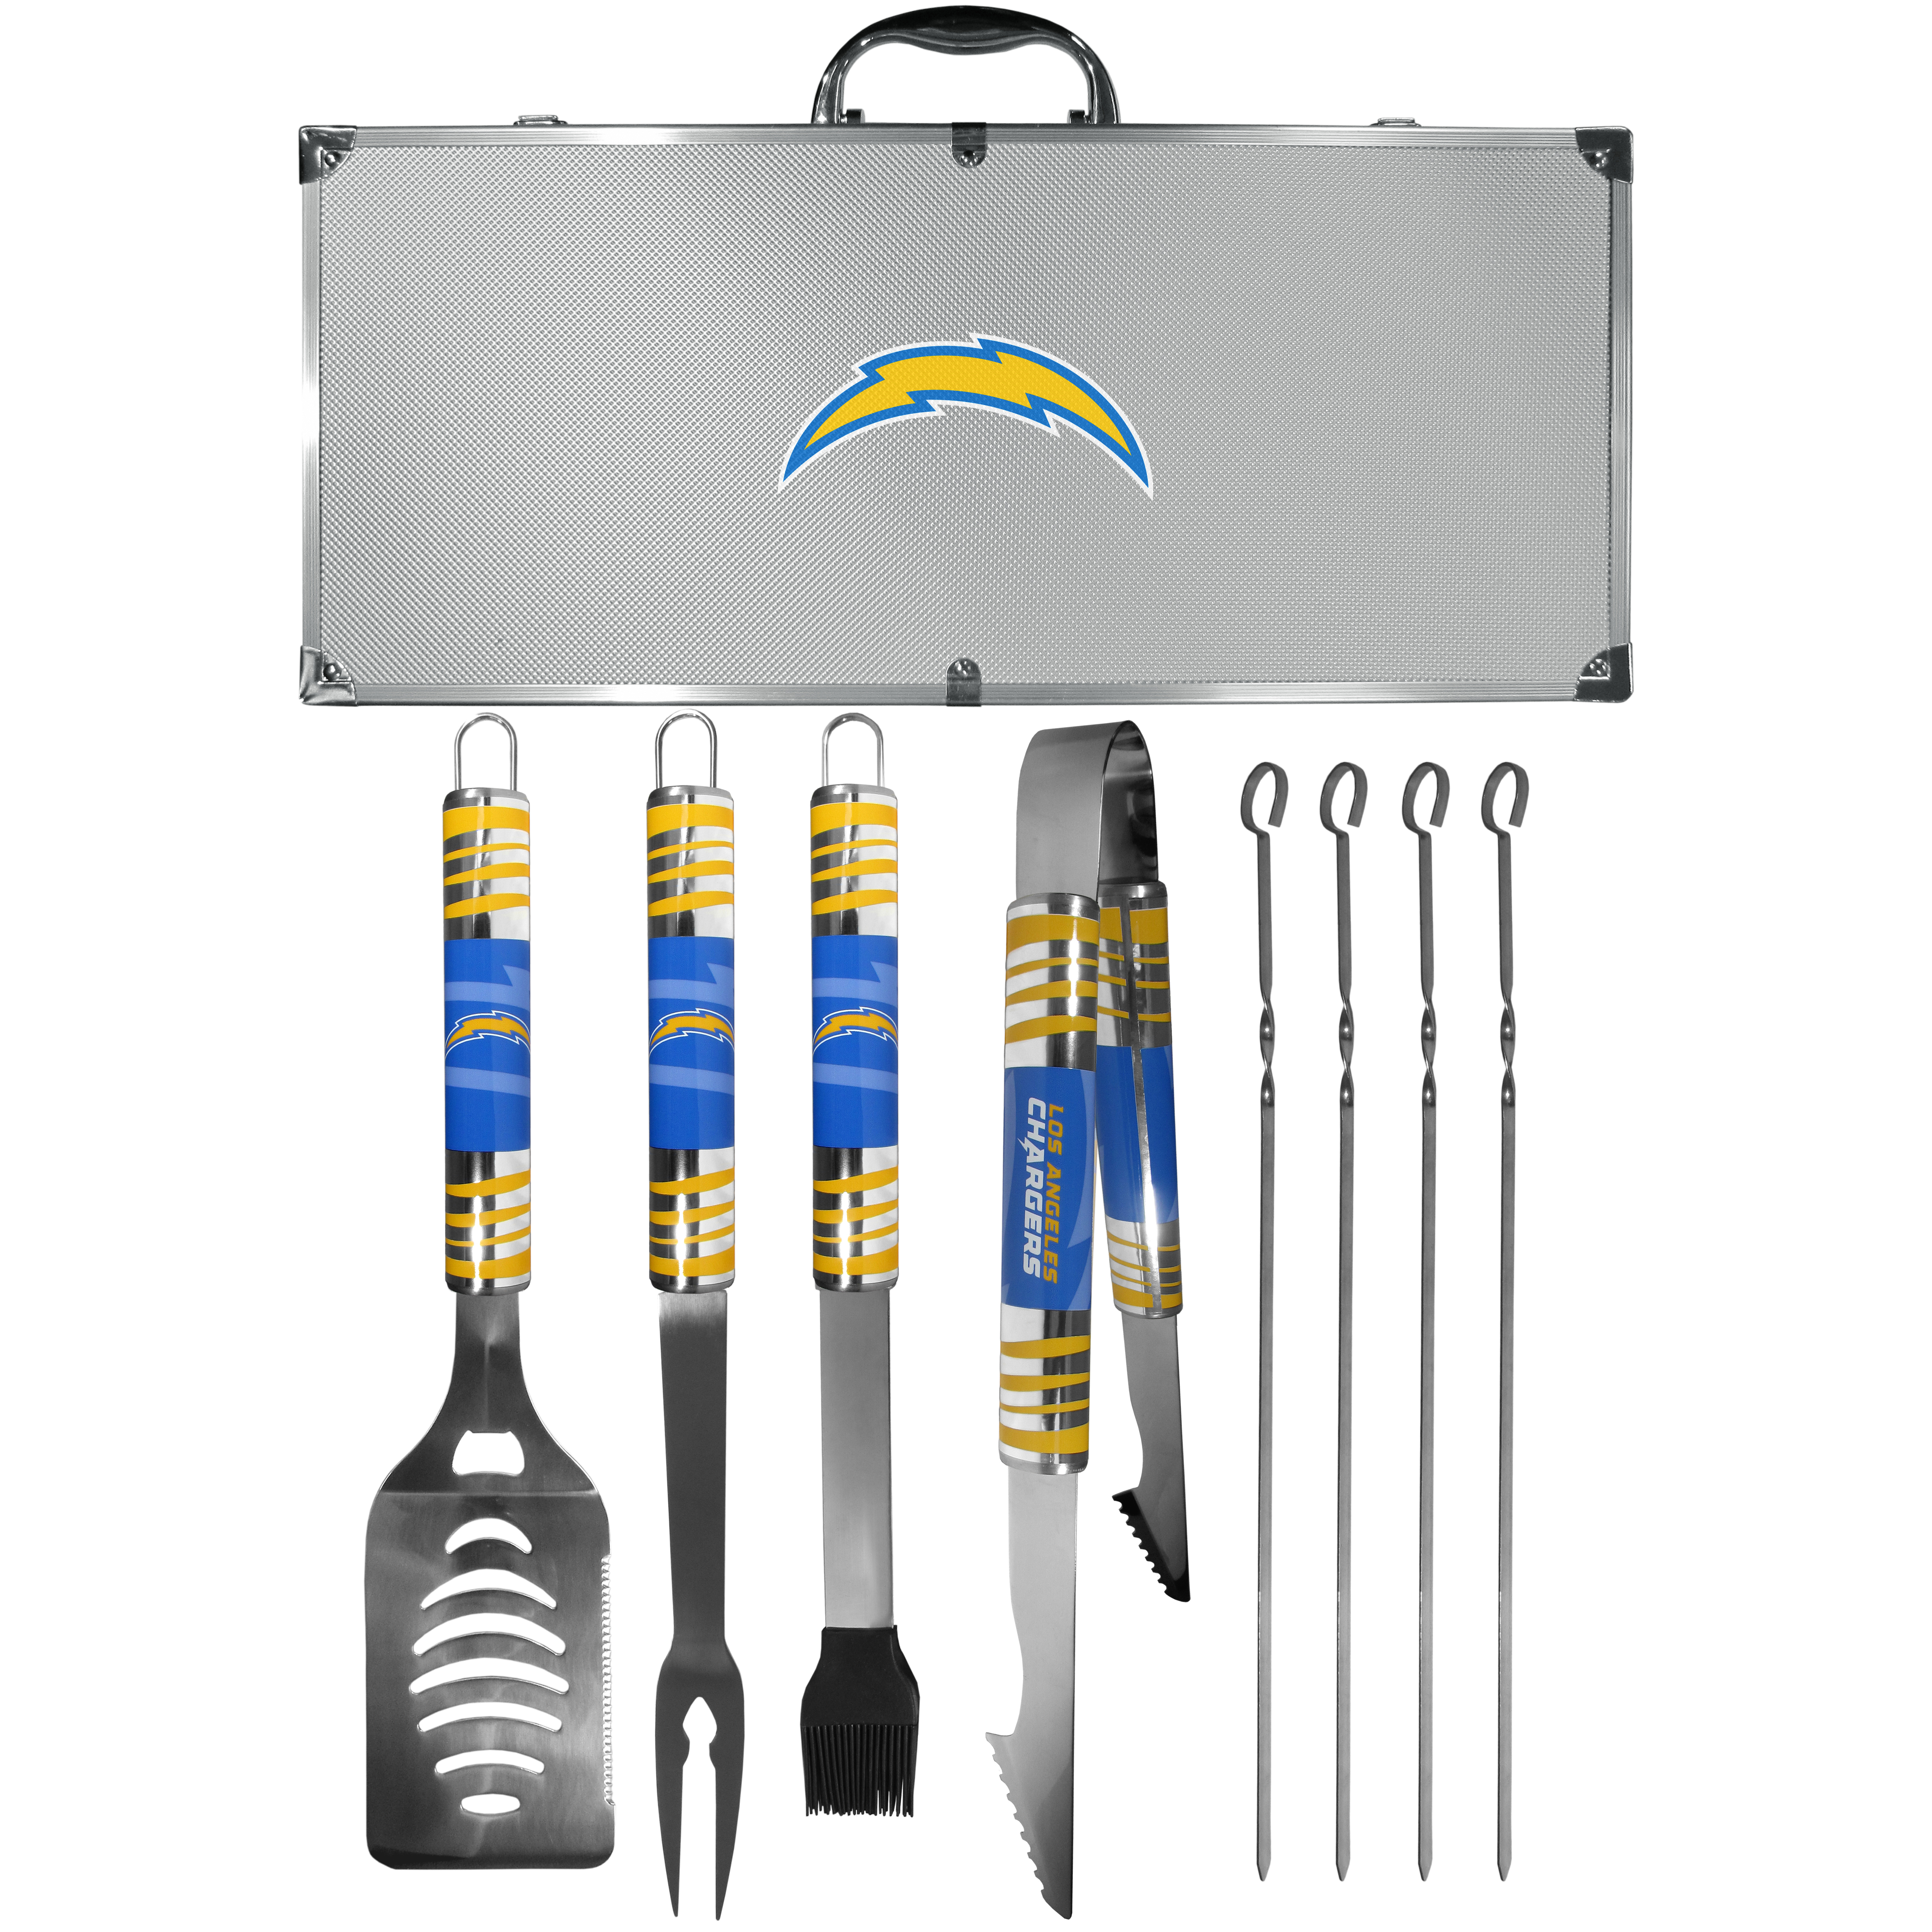 Los Angeles Chargers 8 pc Tailgater BBQ Set - This is the ultimate Los Angeles Chargers tailgate accessory! The high quality, 420 grade stainless steel tools are durable and well-made enough to make even the pickiest grill master smile. This complete grill accessory kit includes; 4 skewers, spatula with bottle opener and serrated knife edge, basting brush, tongs and a fork. The 18 inch metal carrying case is perfect for great outdoor use making grilling an ease while camping, tailgating or while having a game day party on your patio. The tools are 17 inches long and feature vivid team graphics. The metal case features a large team emblem with exceptional detail. This high-end men's gift is sure to be a hit as a present on Father's Day or Christmas.